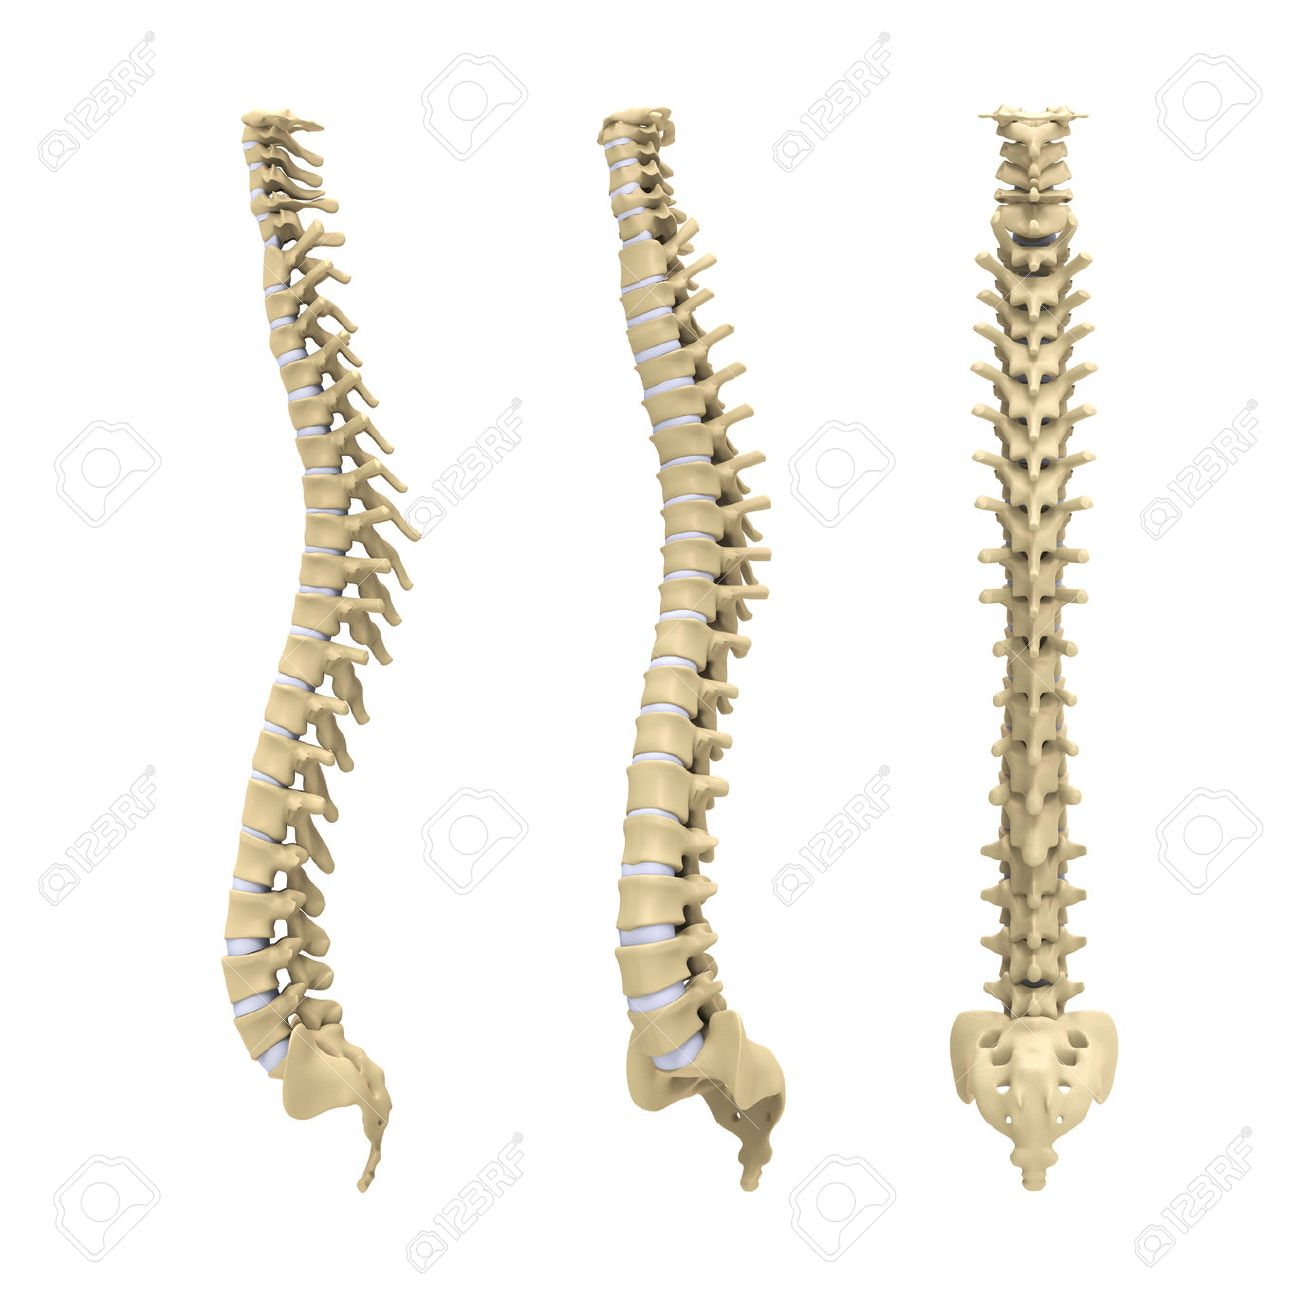 Spinal Cord Stock Photos Royalty Free Spinal Cord Images